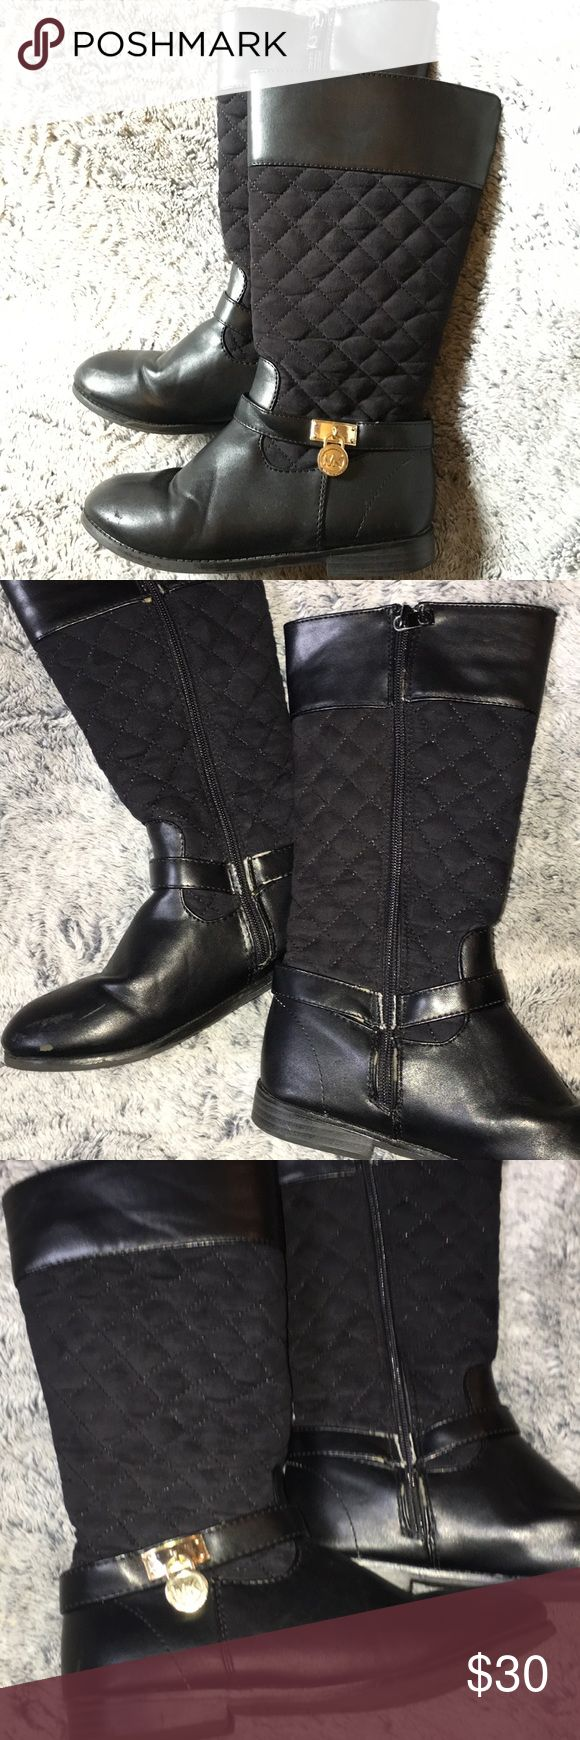 MK CHILDRENS BOOTS Tall Girls size 1 MK boots used condition still very cute & wearable !! MICHAEL Michael Kors Shoes Boots